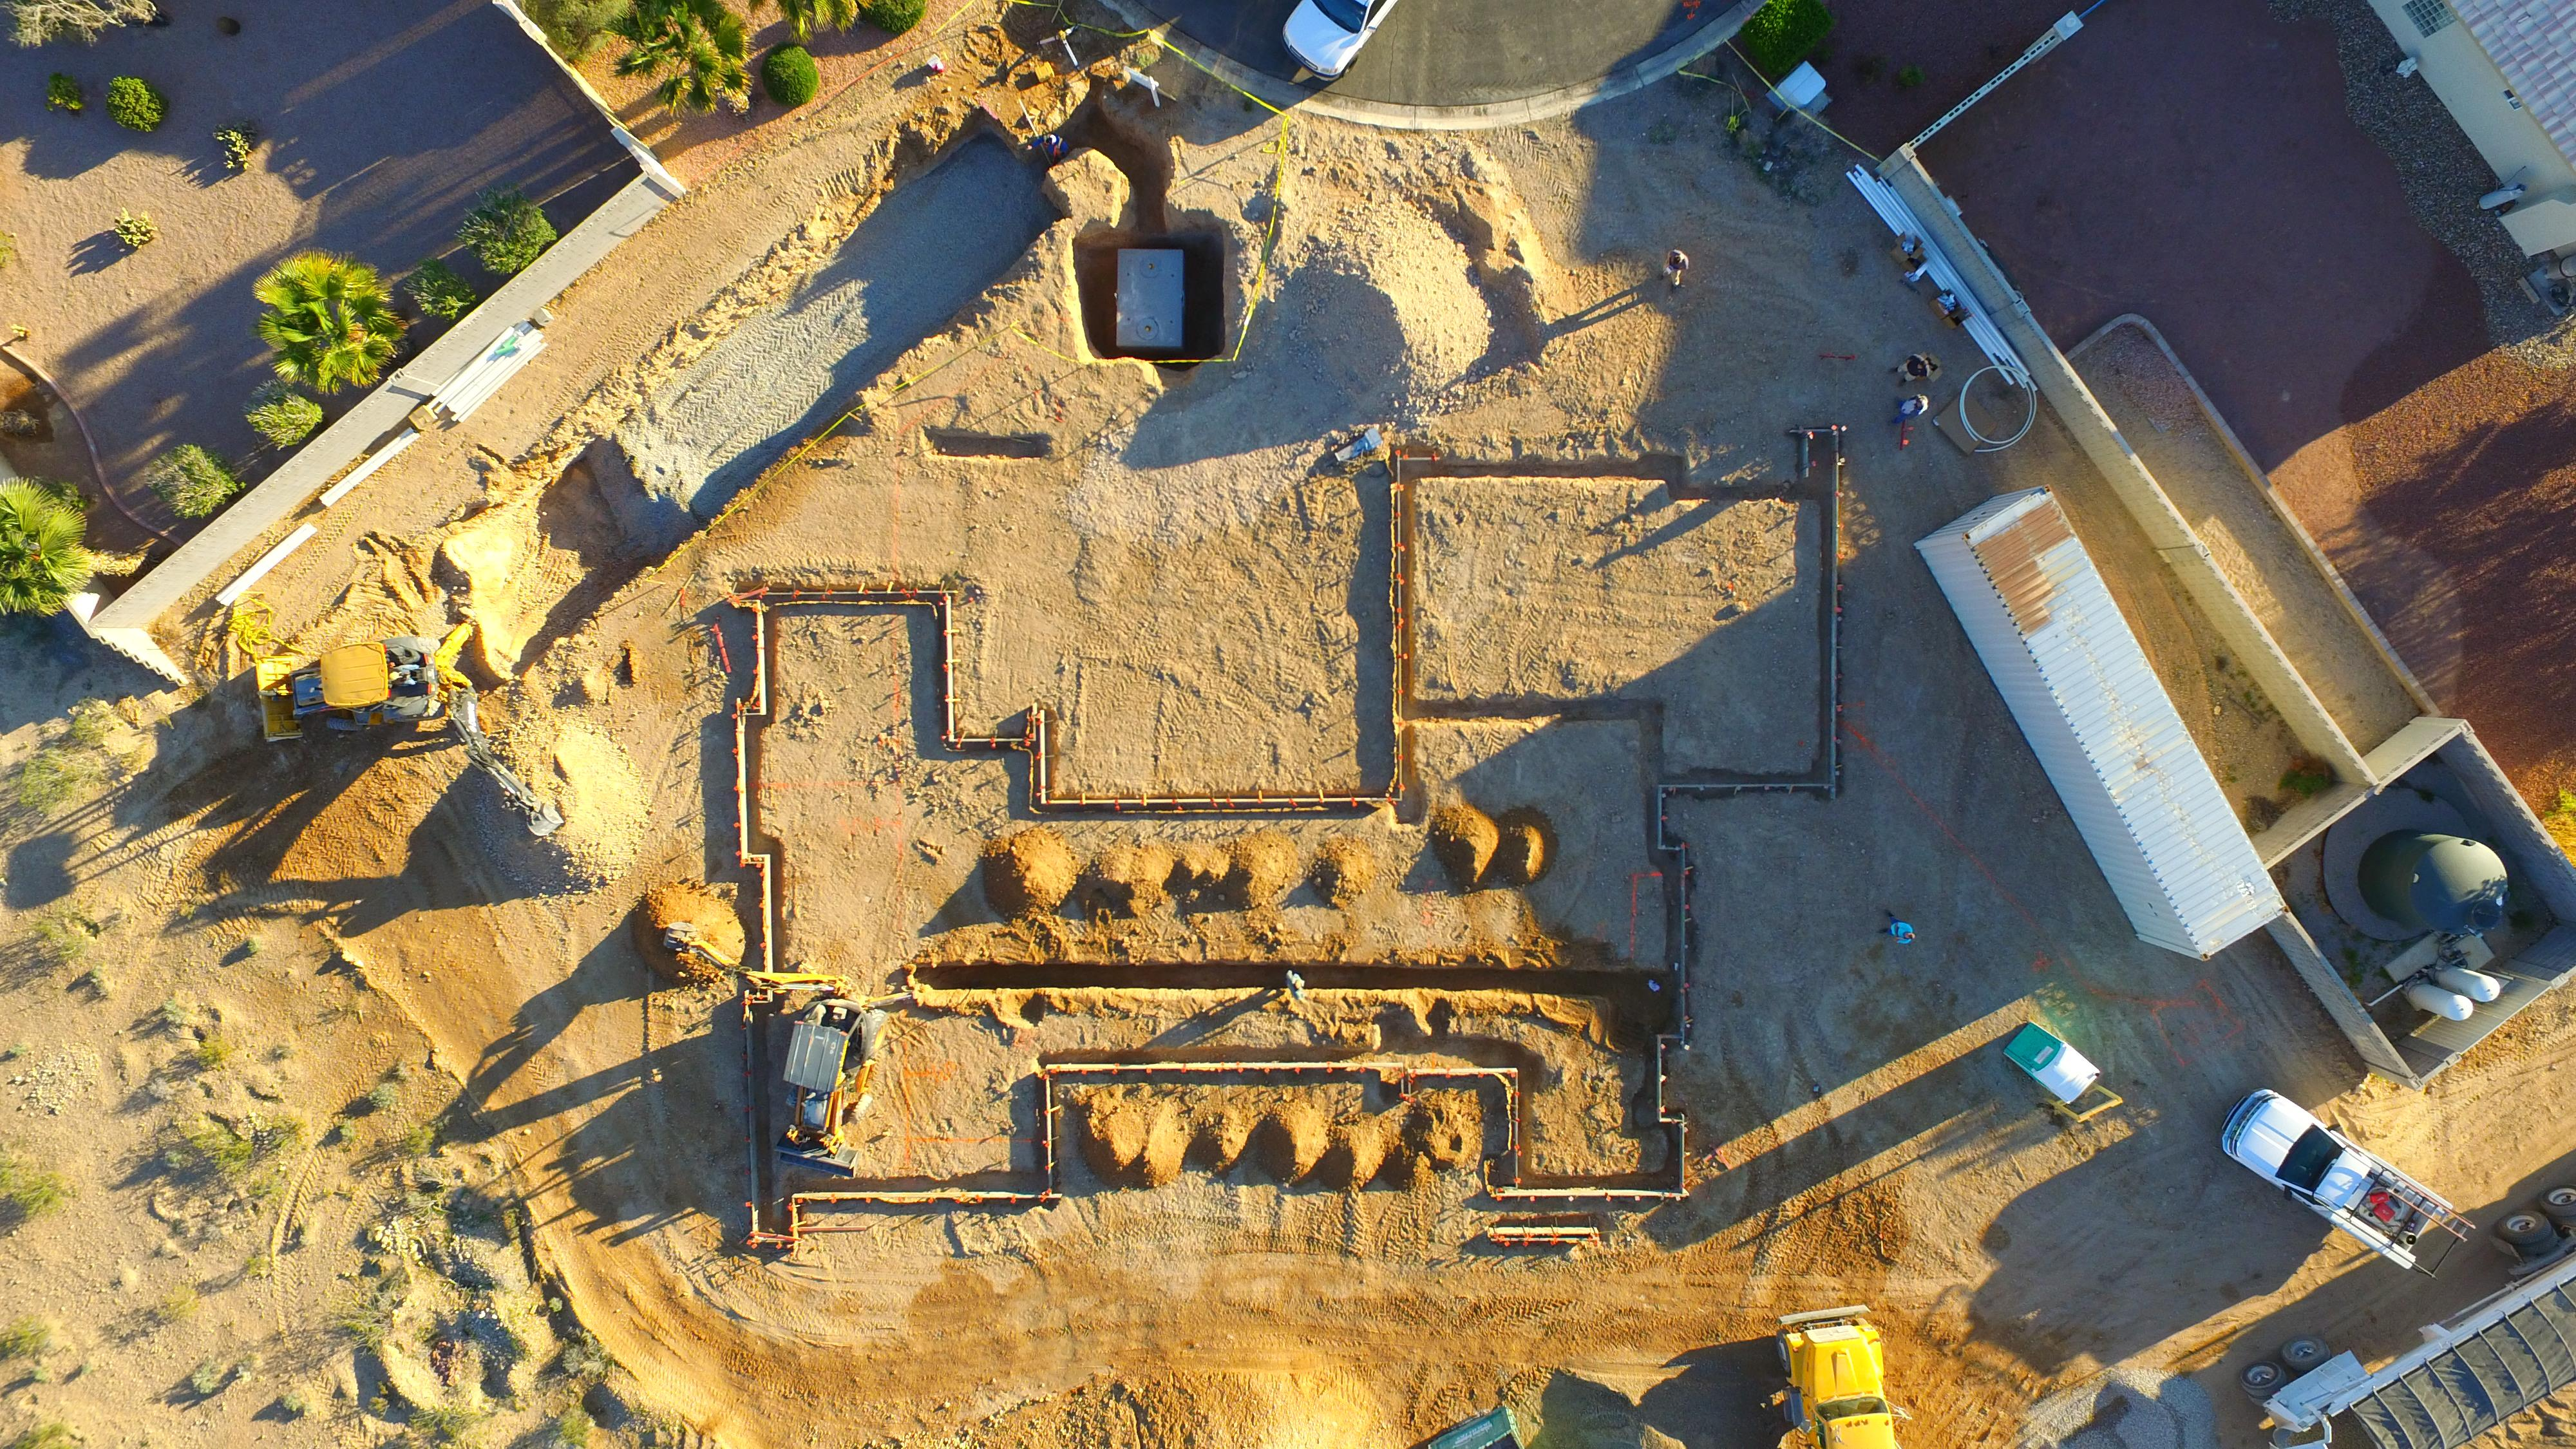 Fourteen days into the construction of the St. Jude's Dream Home. Photo taken by drone on 3/17/2017.  Tickets for a chance to win the home available Wednesday, August 2, 2017 at DreamHome.org (or call 800-378-5386)  (Photo Courtesy Element Building Company)